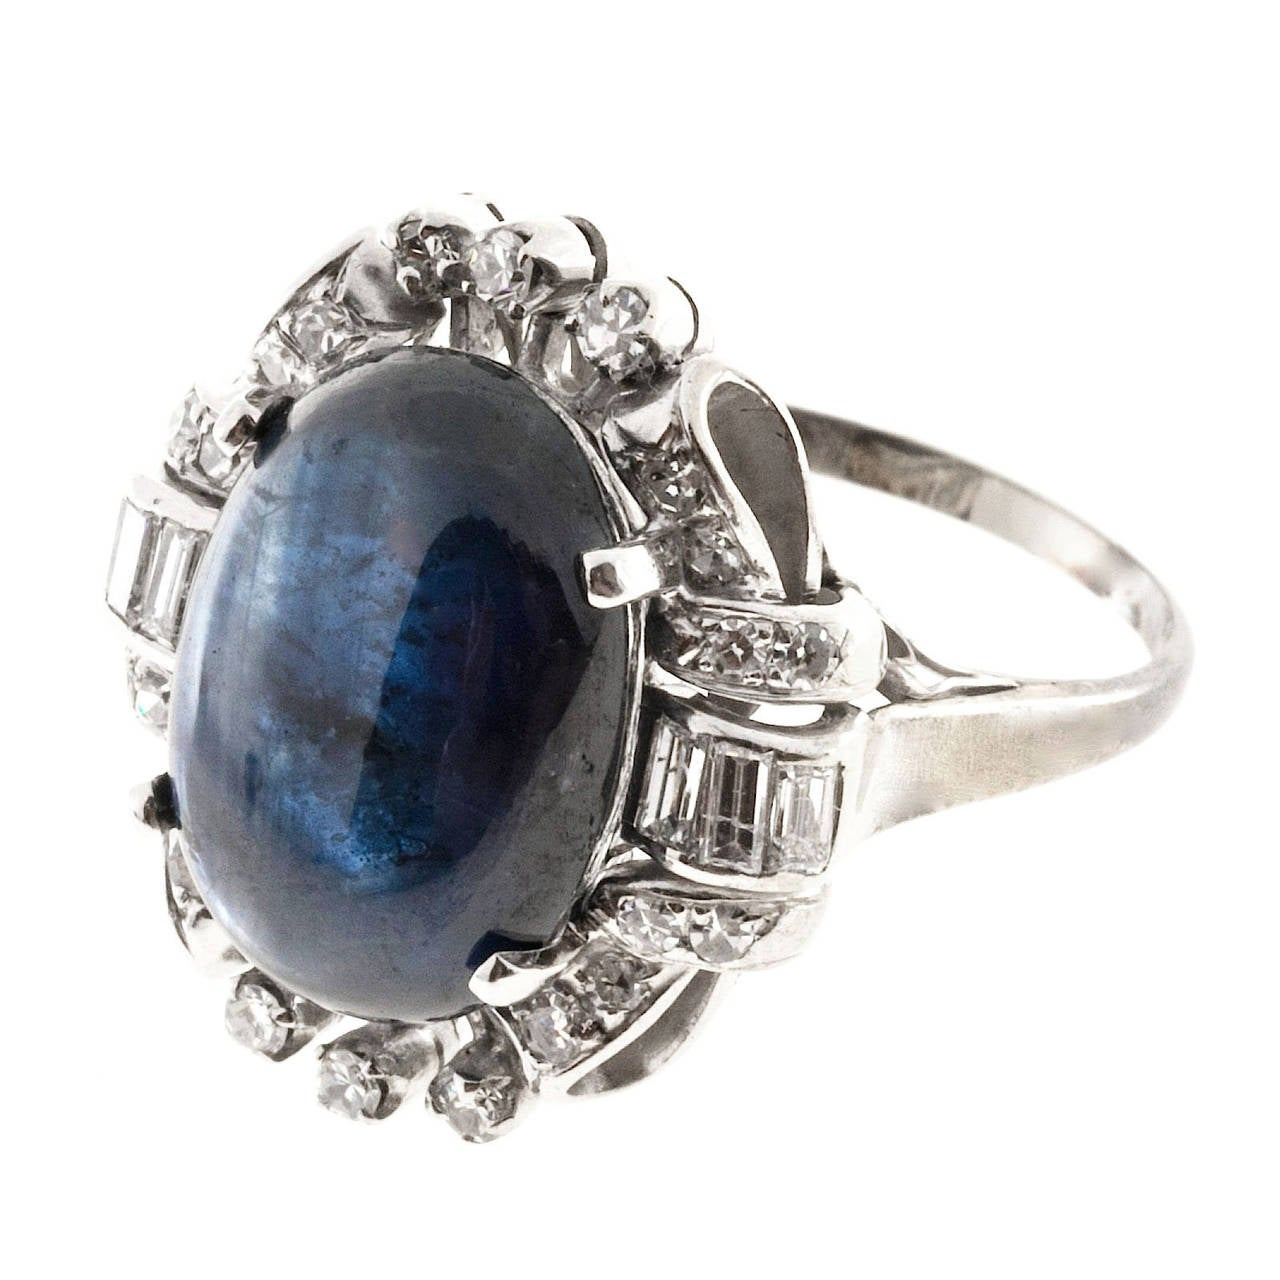 Oval Cabochon Sapphire Diamond Gold Cocktail Ring 1